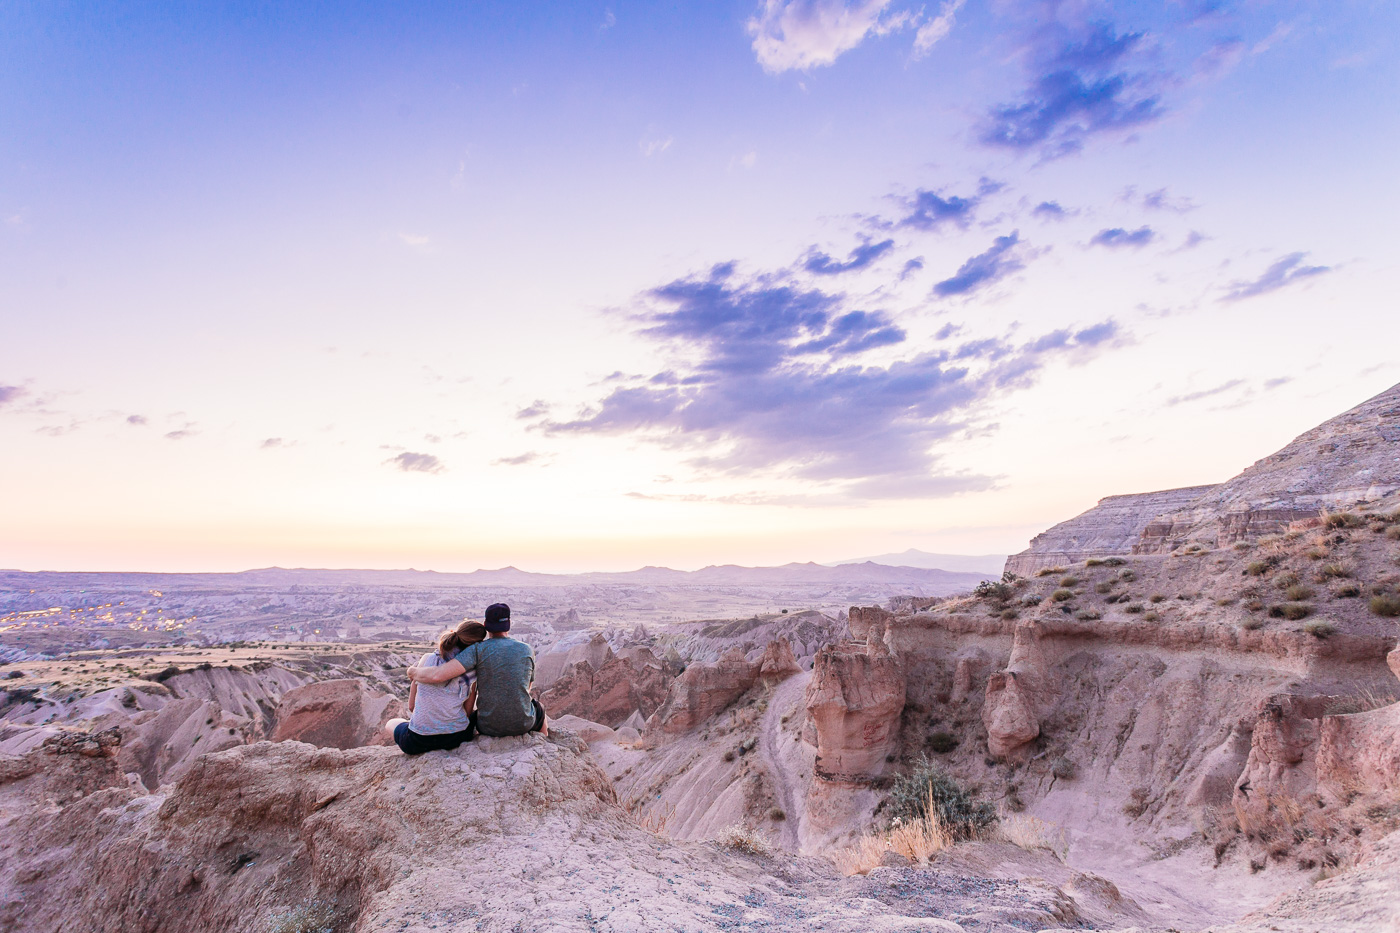 Ending our day enjoying a spectacular sunset over Red Valley in Cappadocia